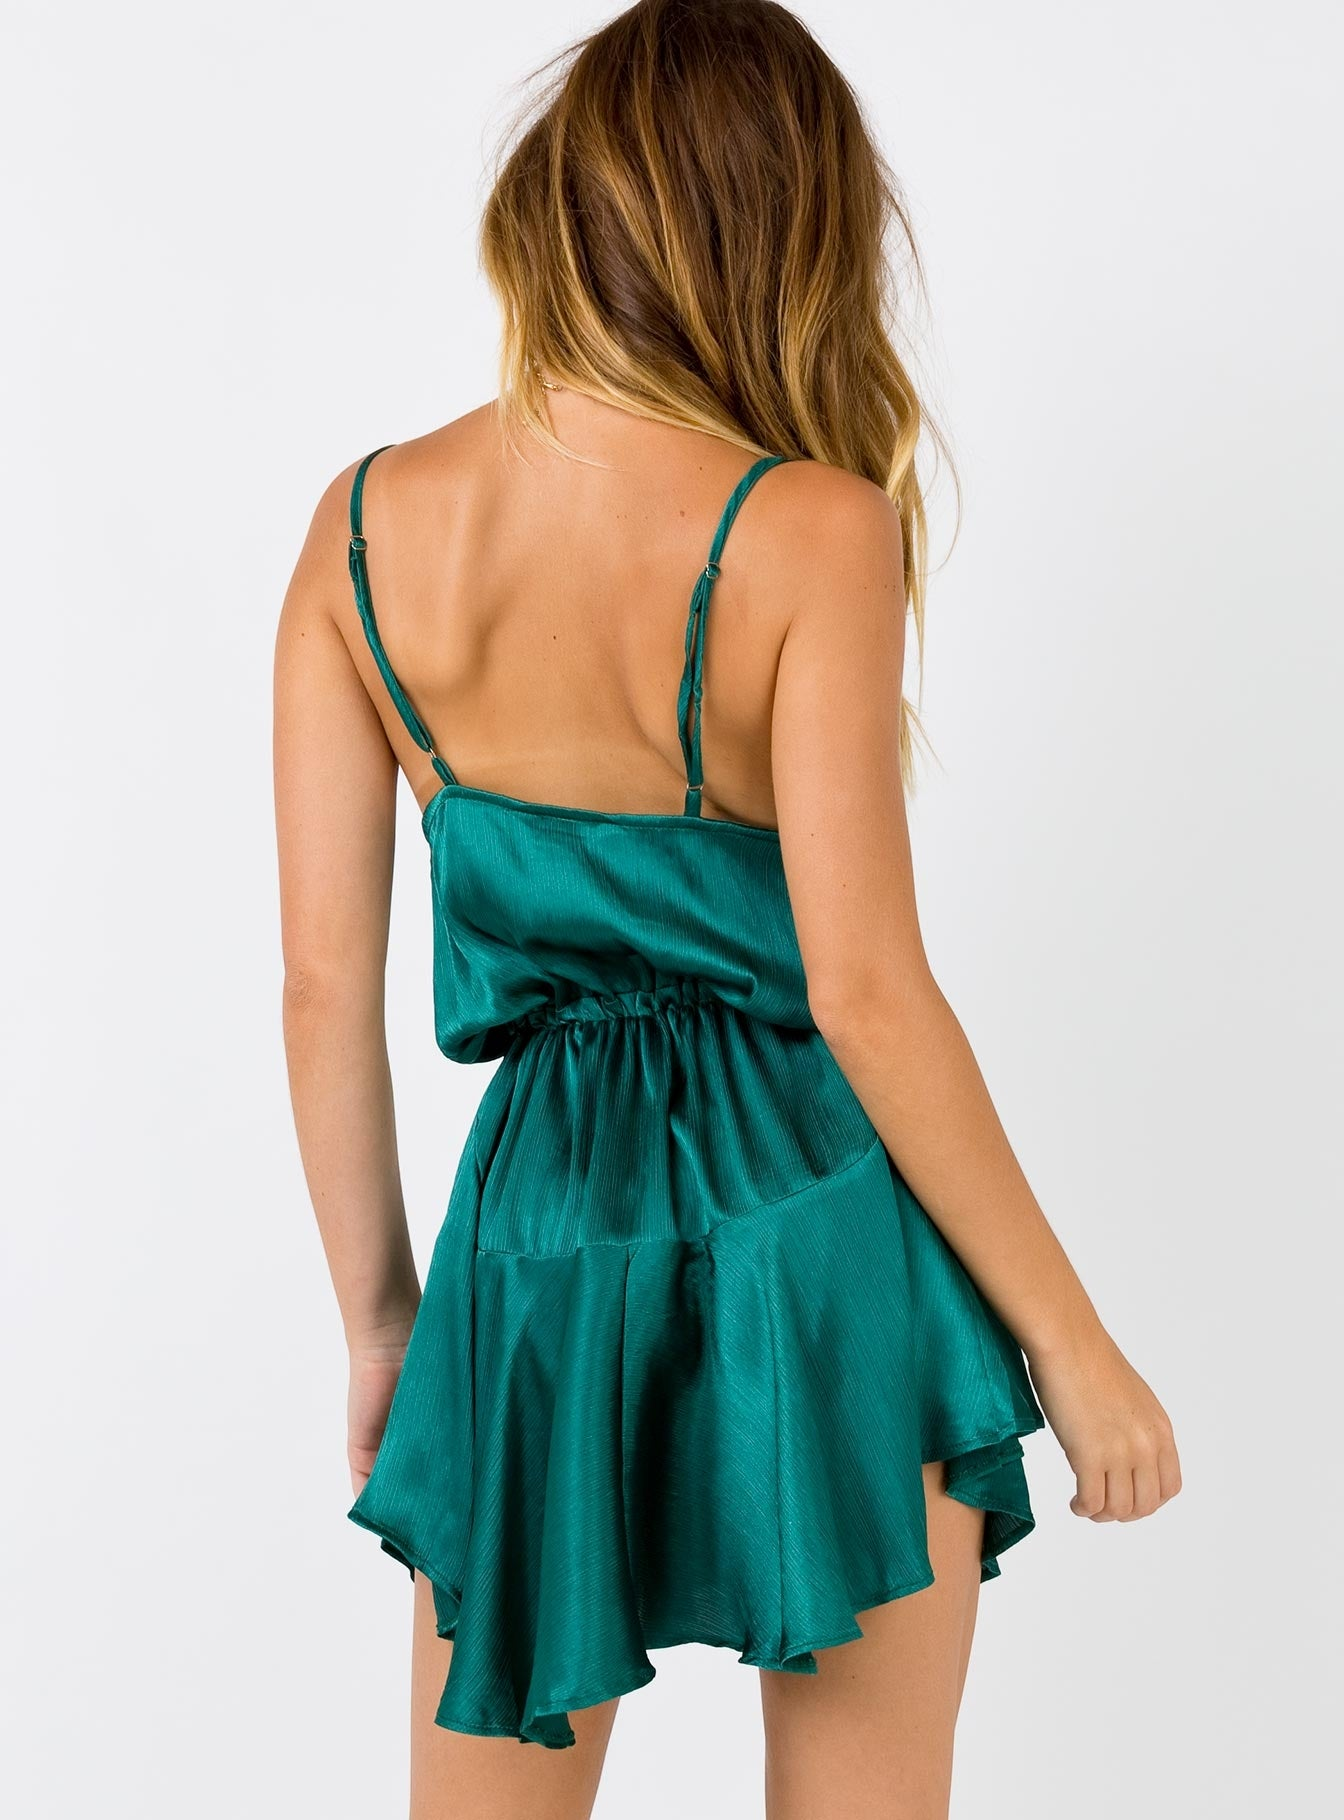 The Lia Mini Dress Jade